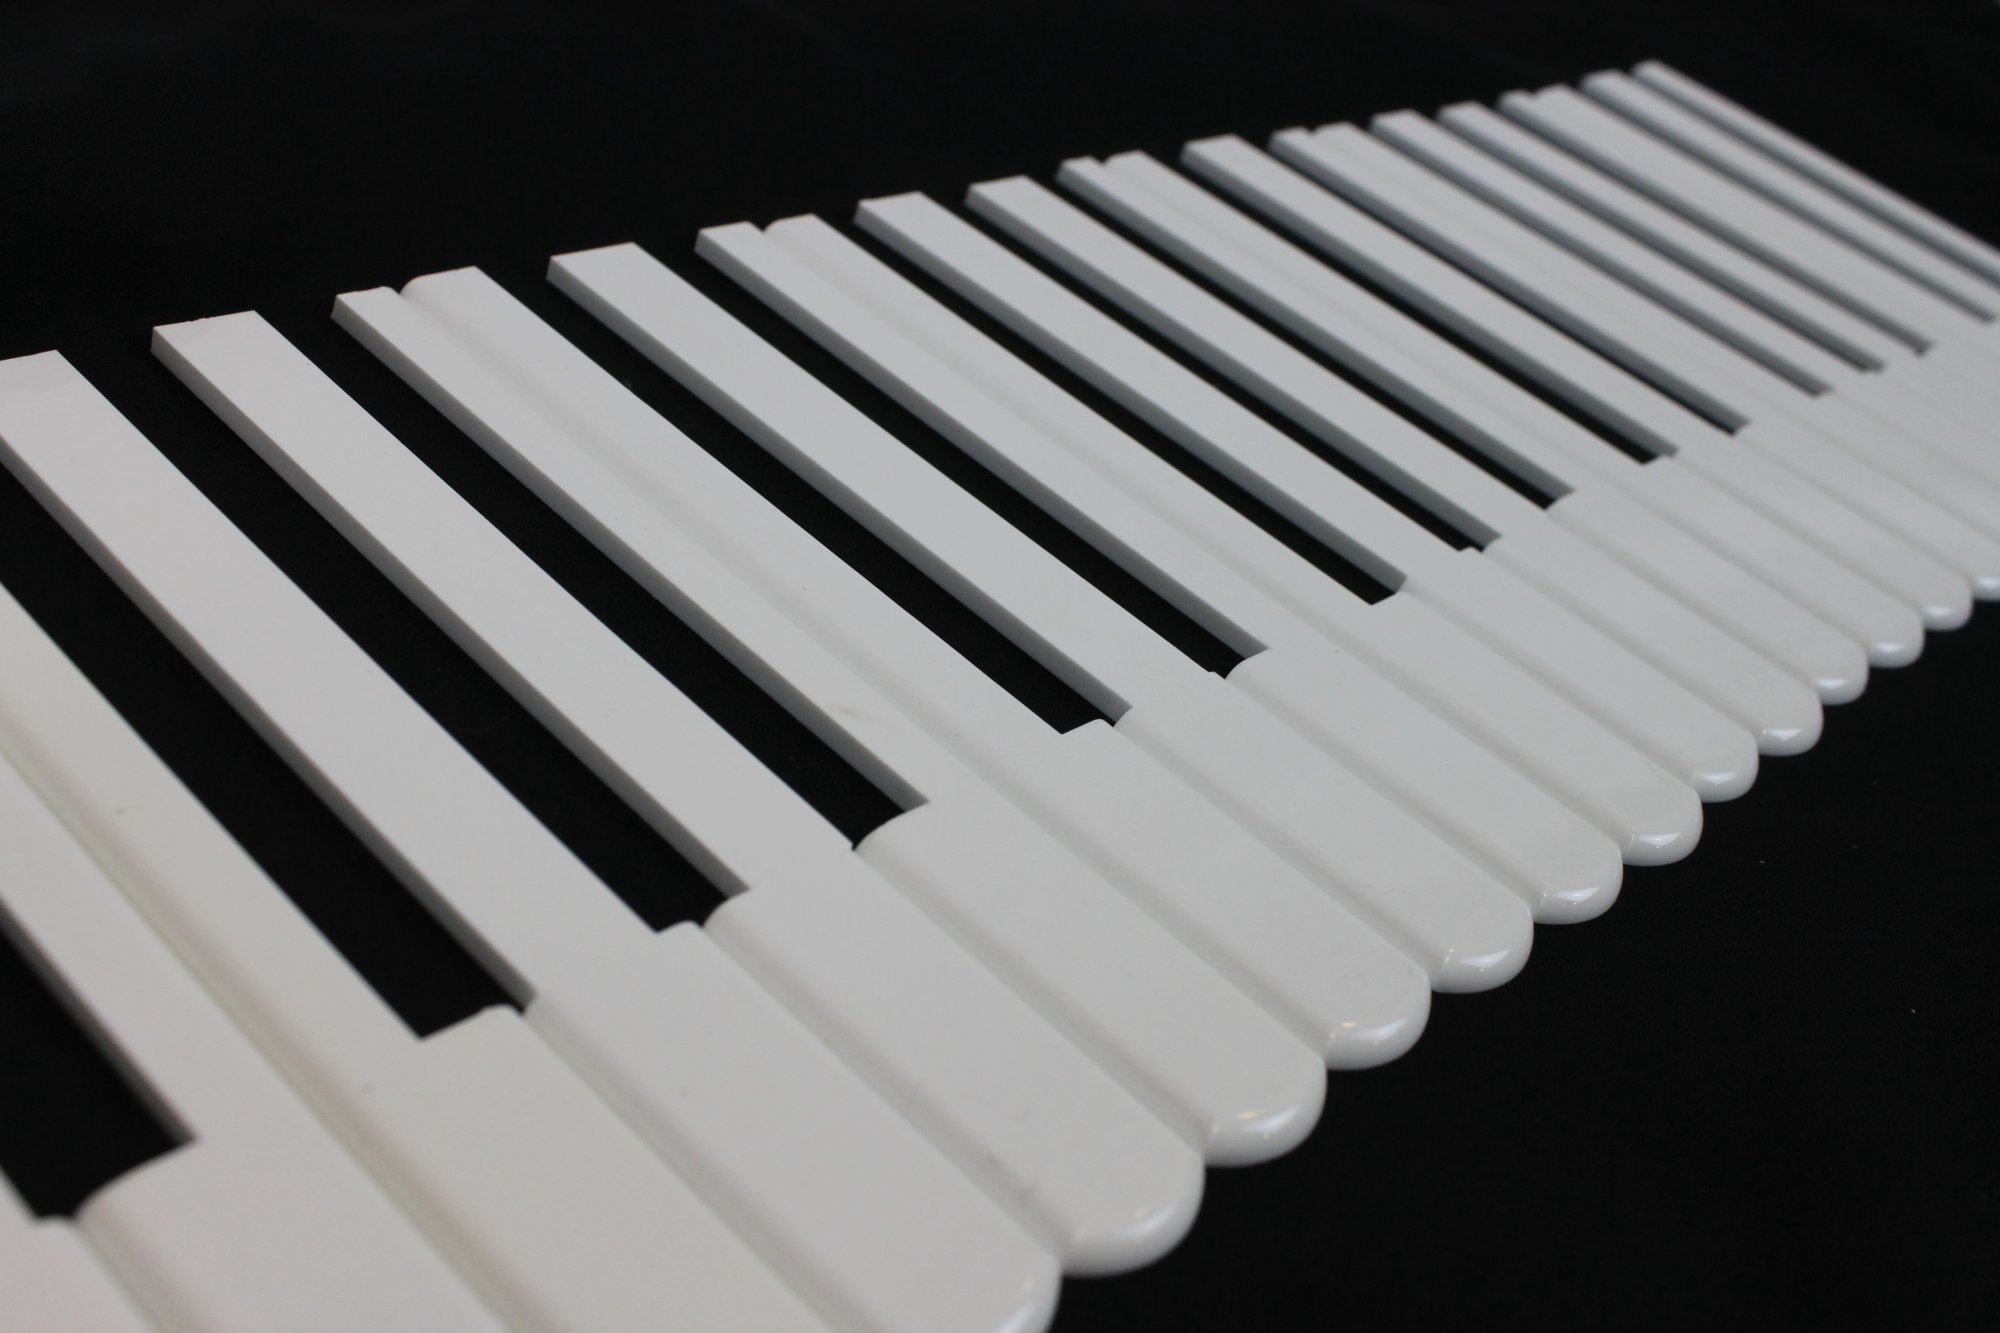 Piano Accordion Part - Set of 24 Pre-Cut White Key Tops 19.8mm Width